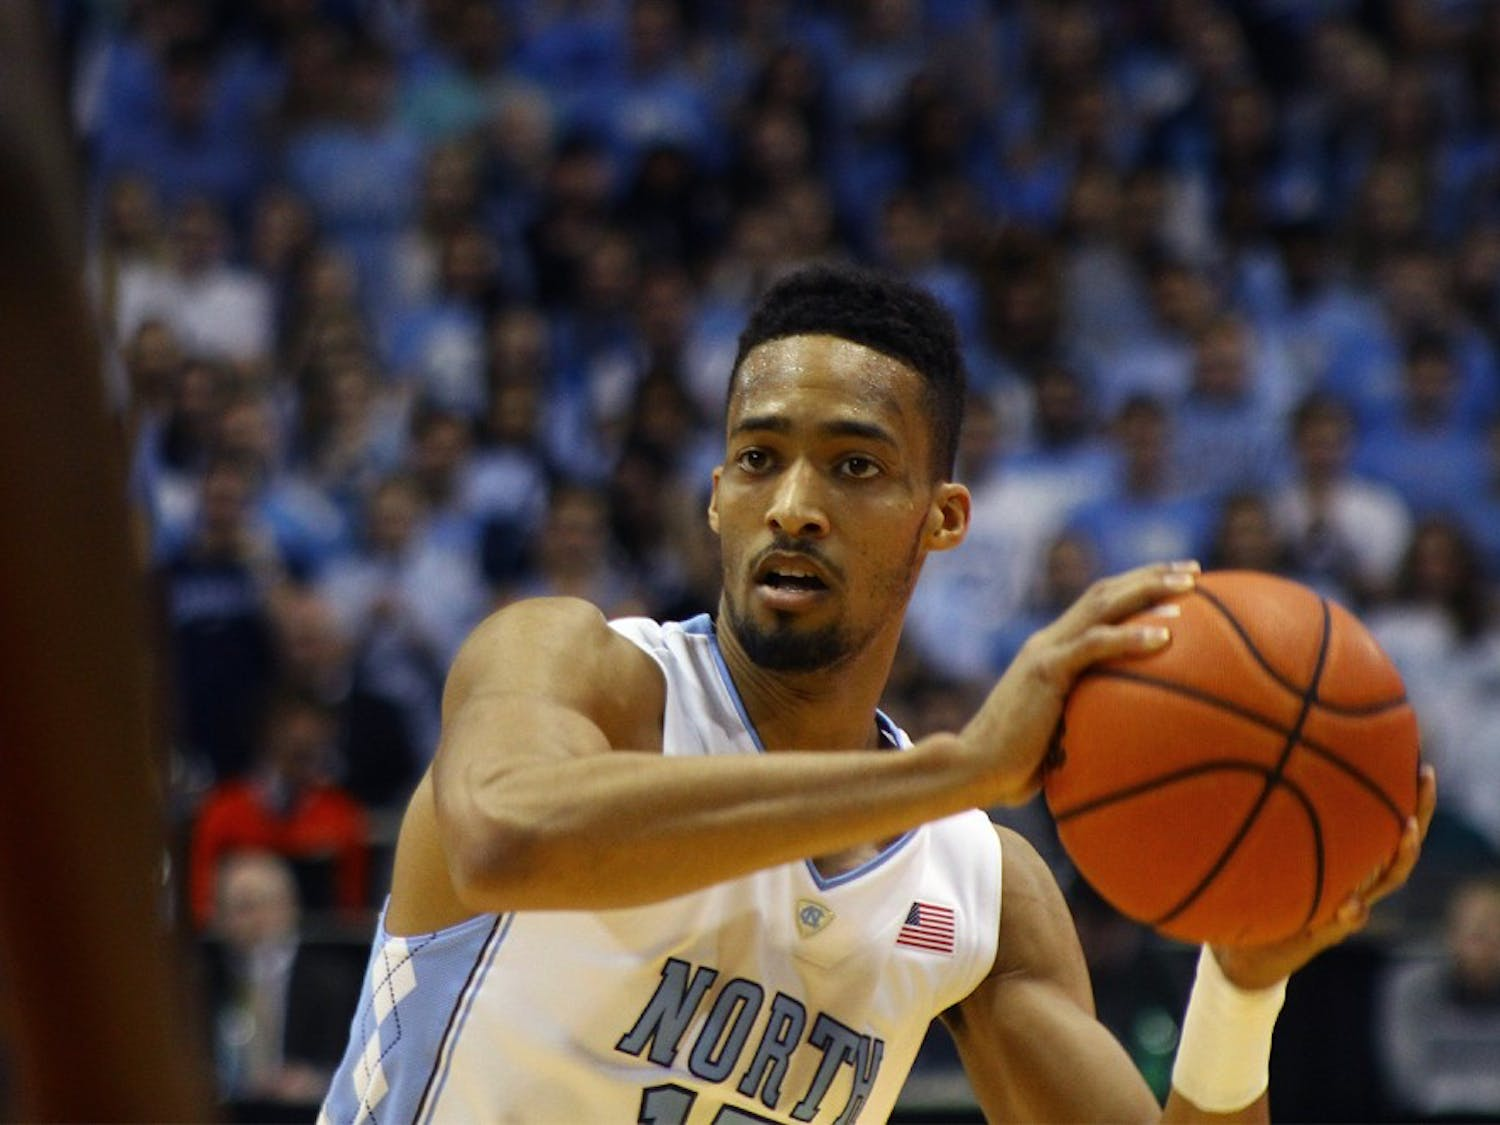 Junior forward J.P. Tokoto (13) didn't start Saturday night in UNC's 79-68 win over Boston College. Tokoto had nine points in 29 minutes.